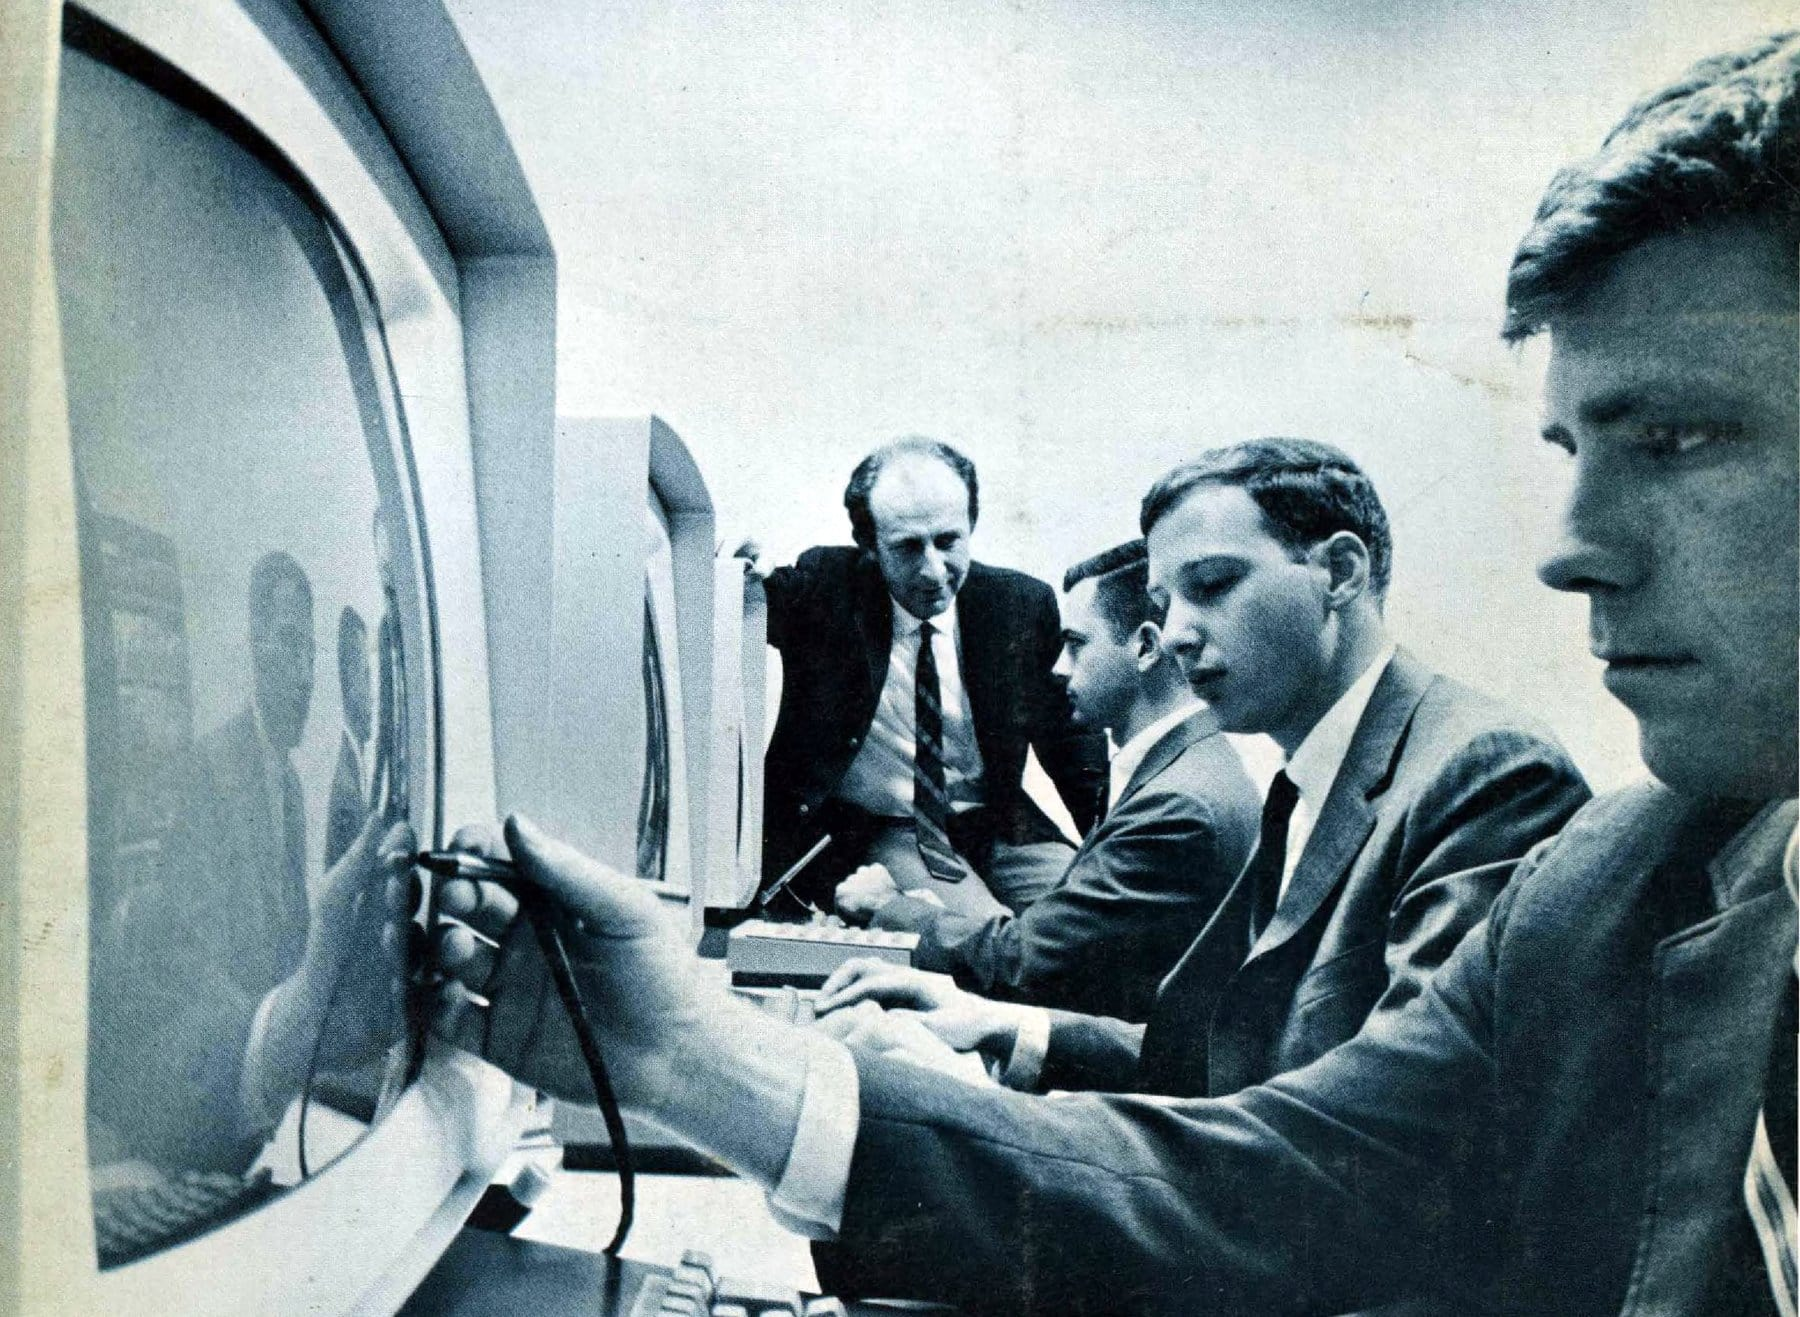 Computers in 1968